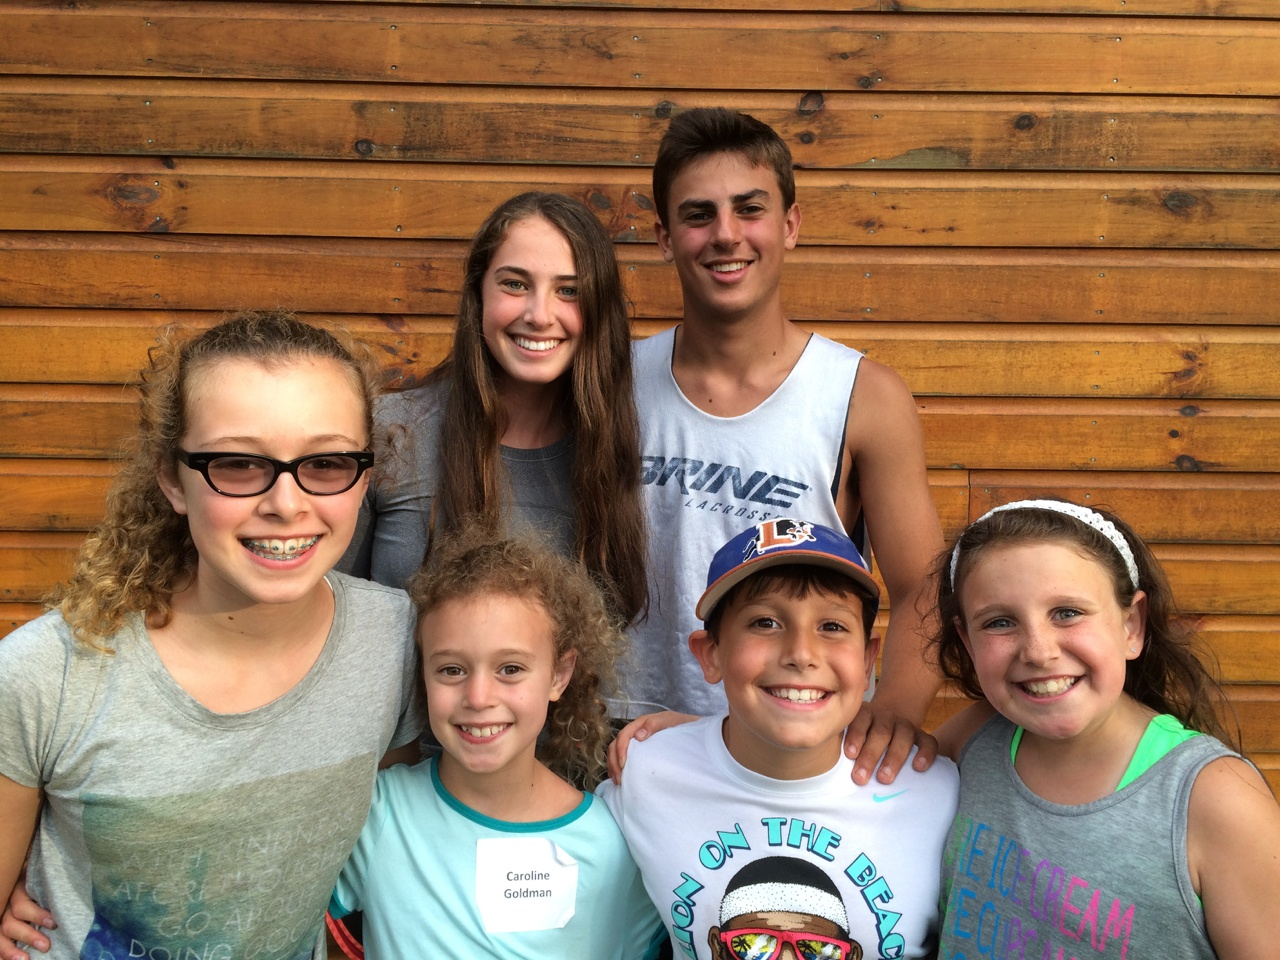 brother-sister camp